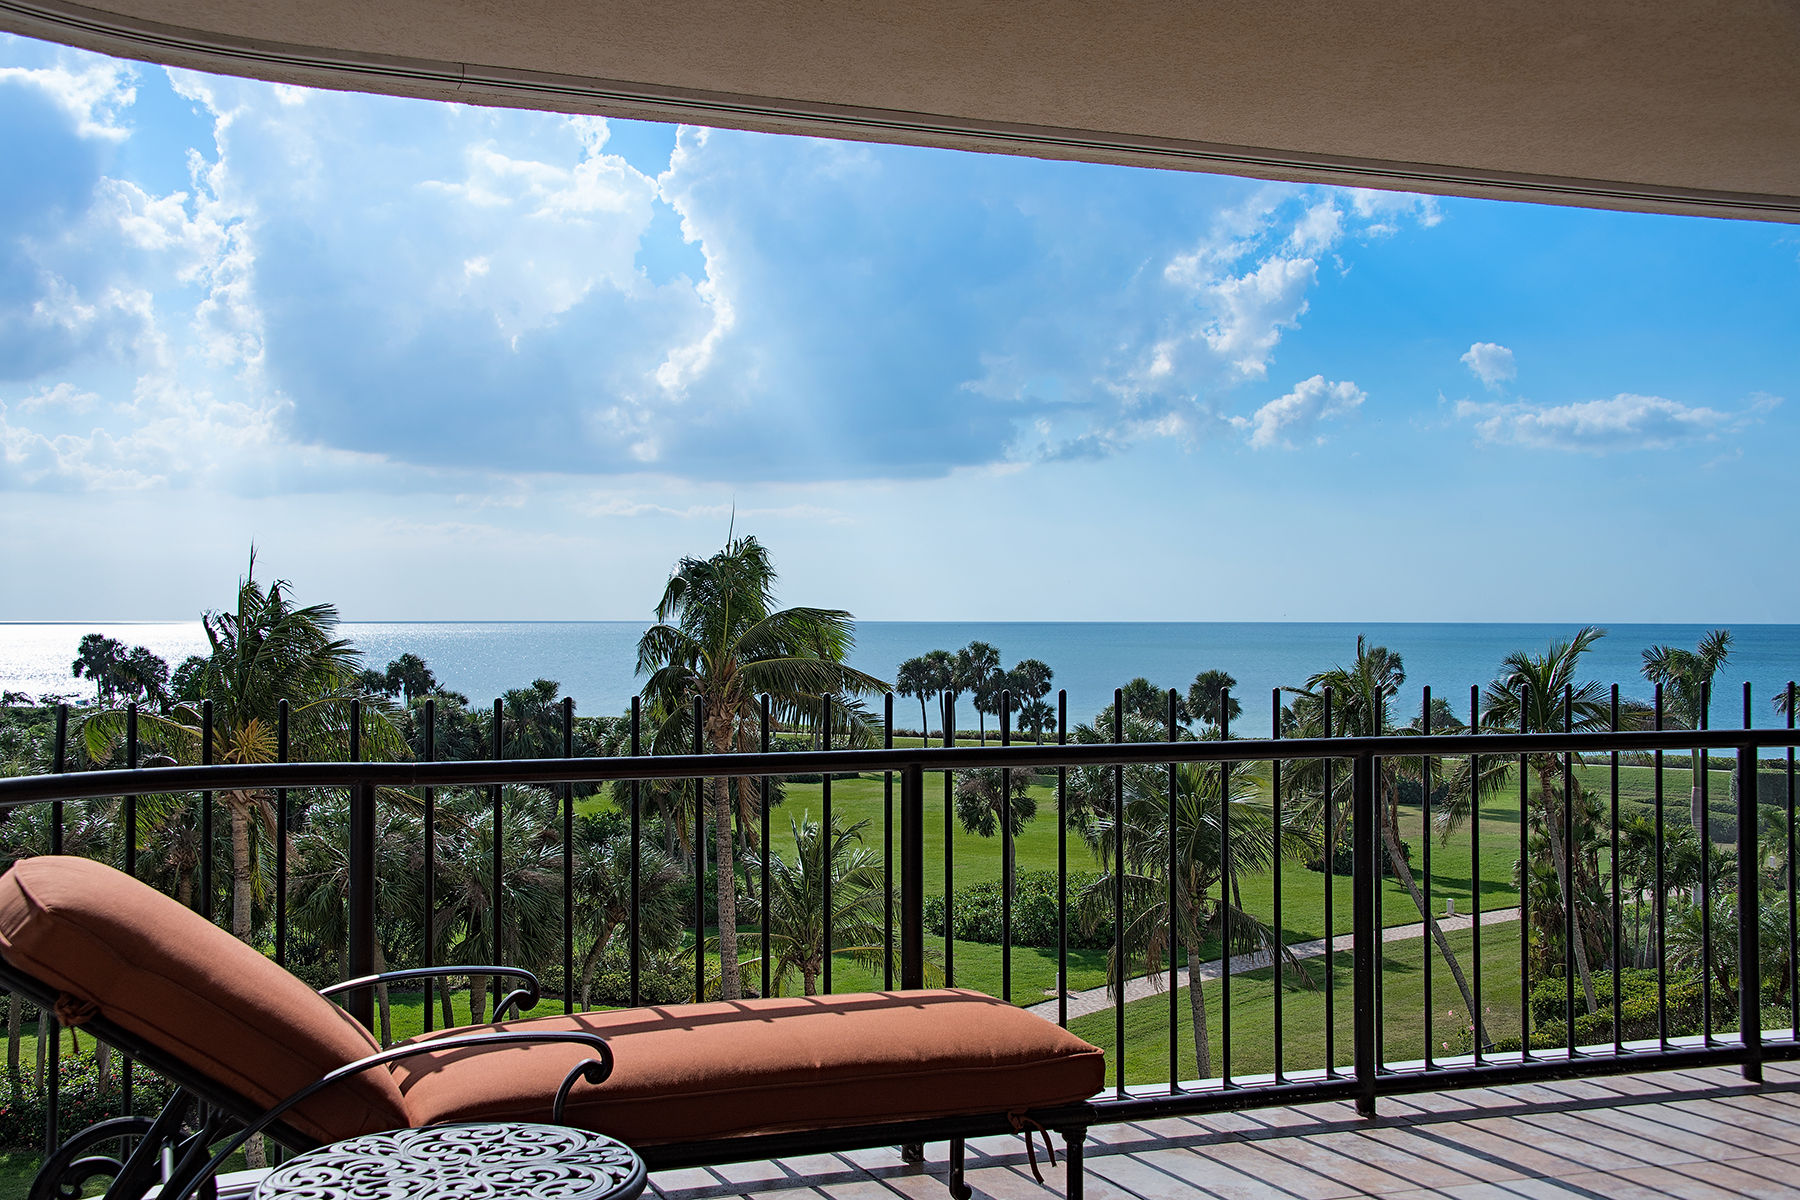 Condominium for Sale at PARK SHORE - PARK SHORE TOWER 4251 Gulf Shore Blvd N 5C, Naples, Florida 34103 United States